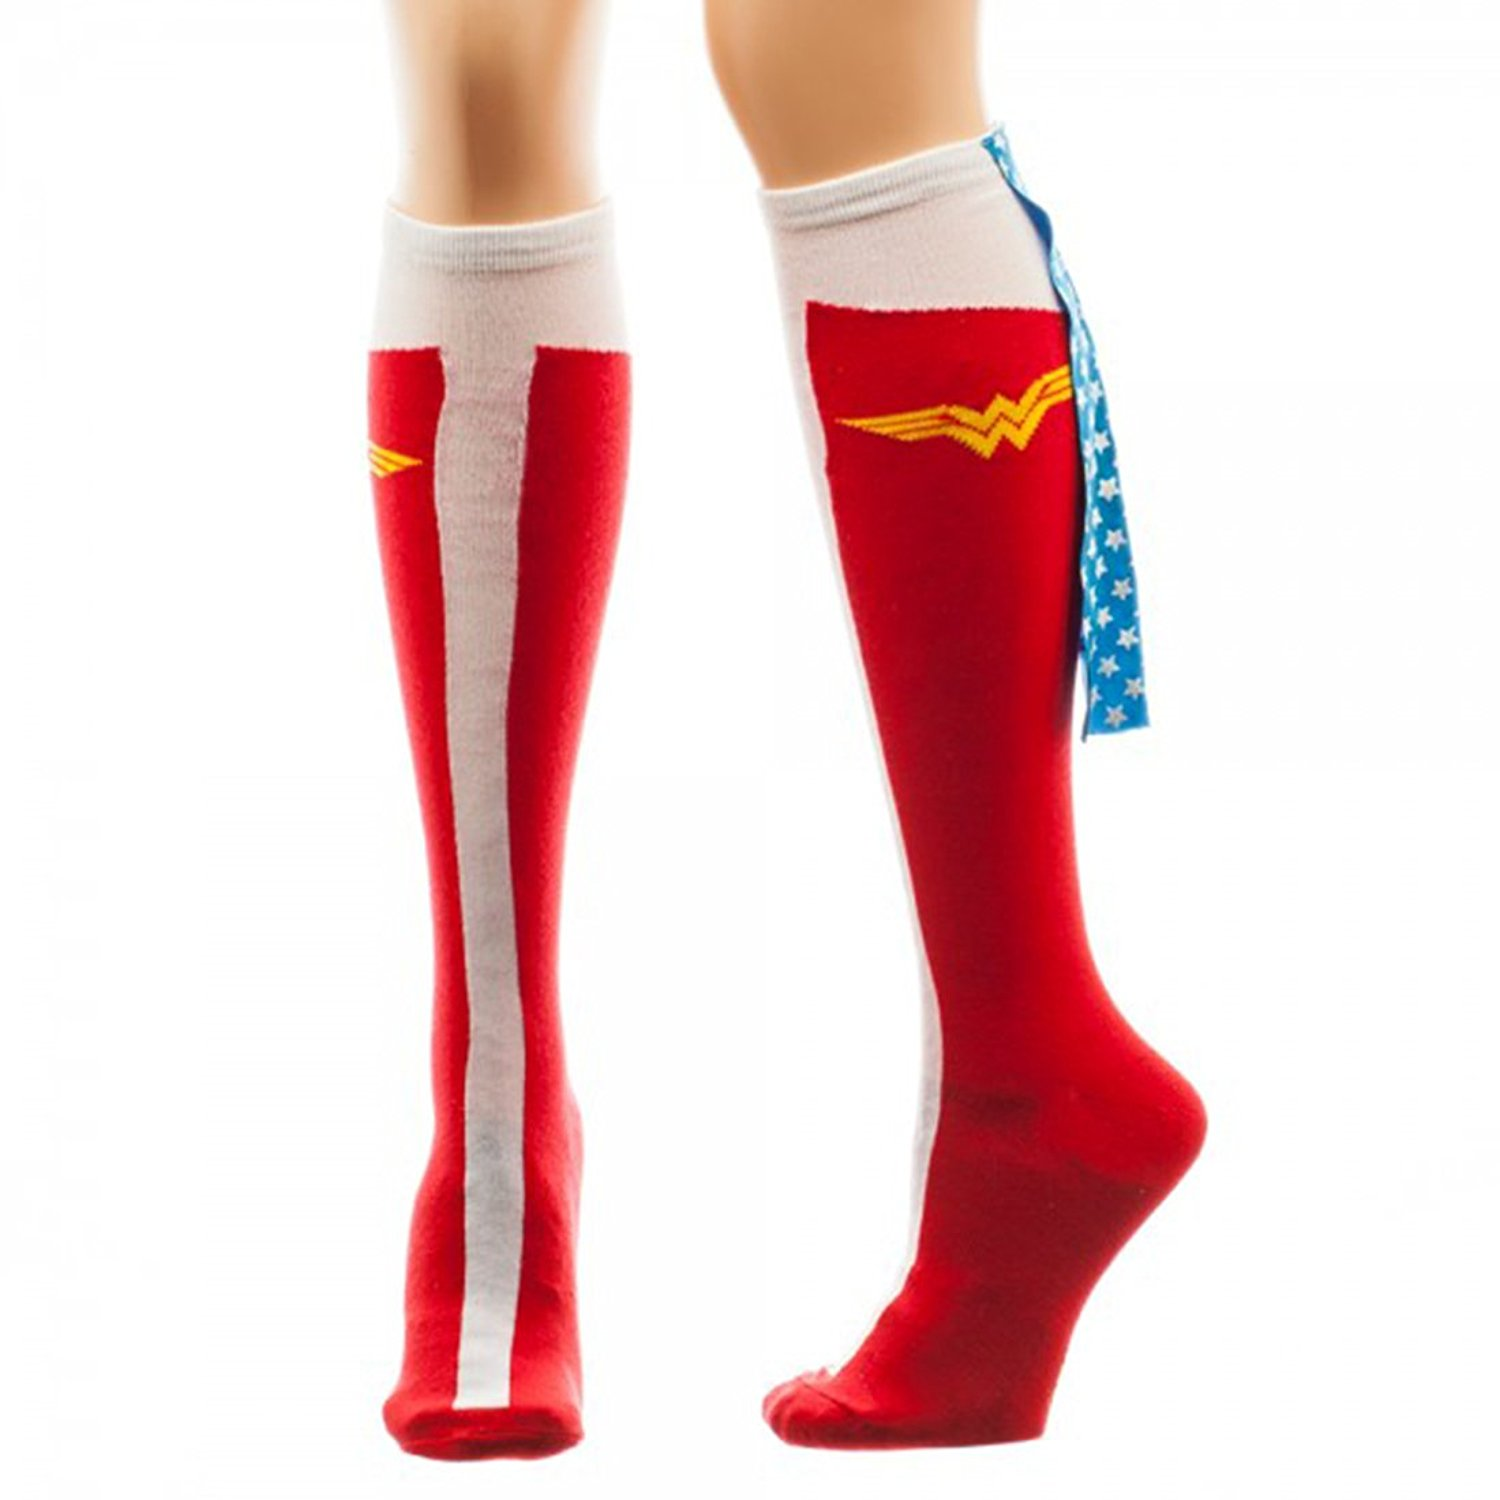 wonder women socks